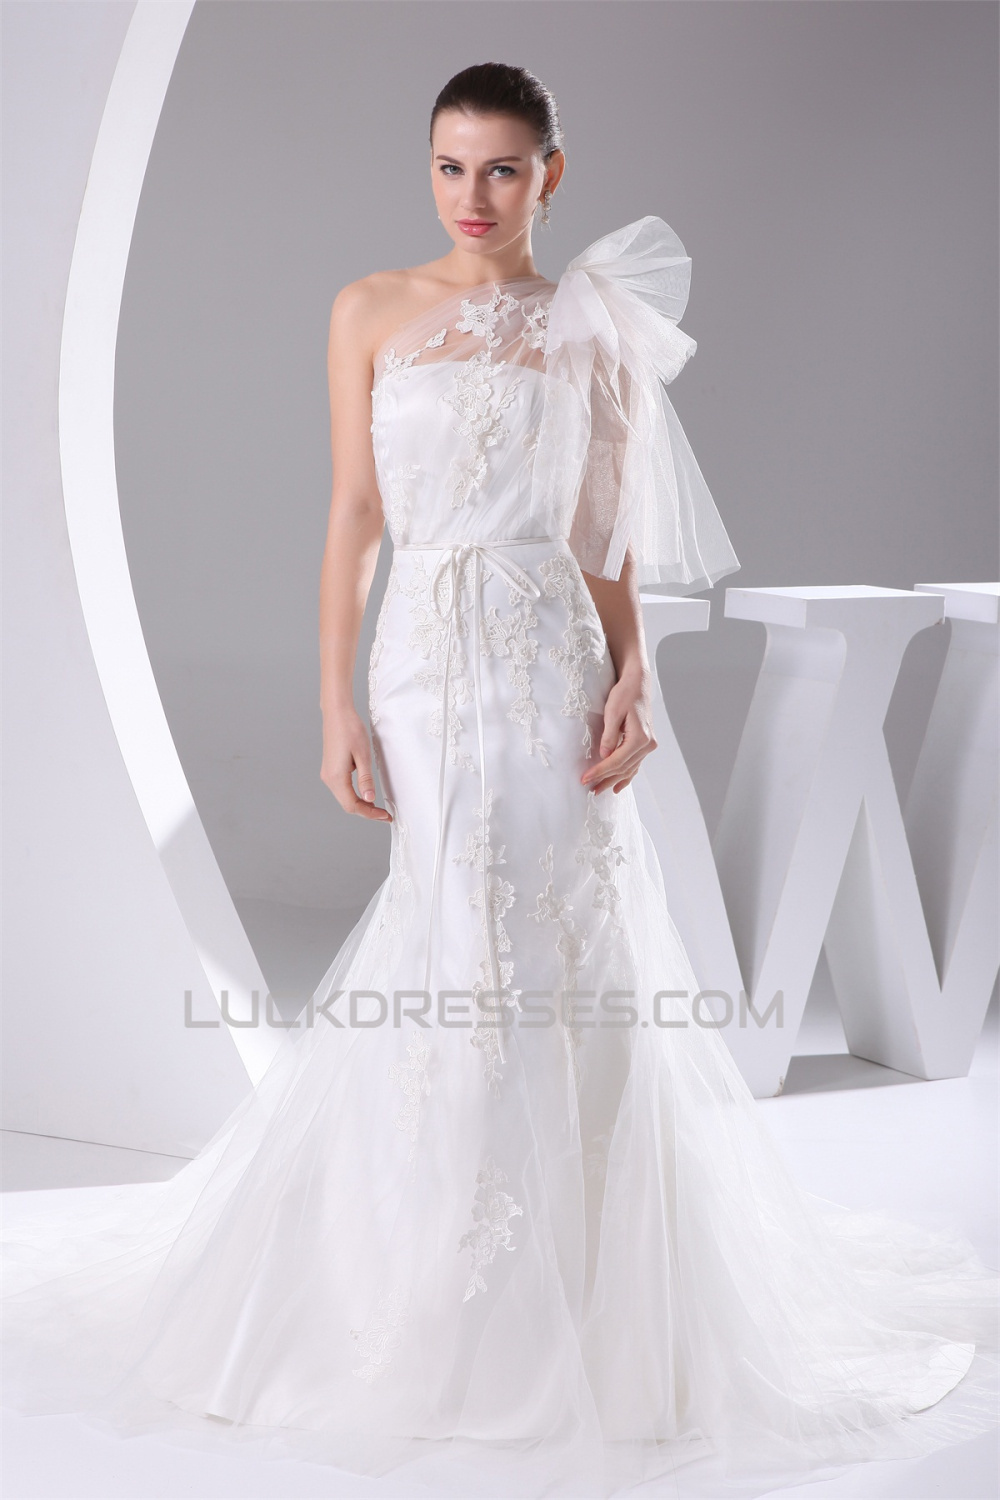 c29ae3a1694 Mermaid/Trumpet Satin Netting Lace One-Shoulder Wedding Dresses ...